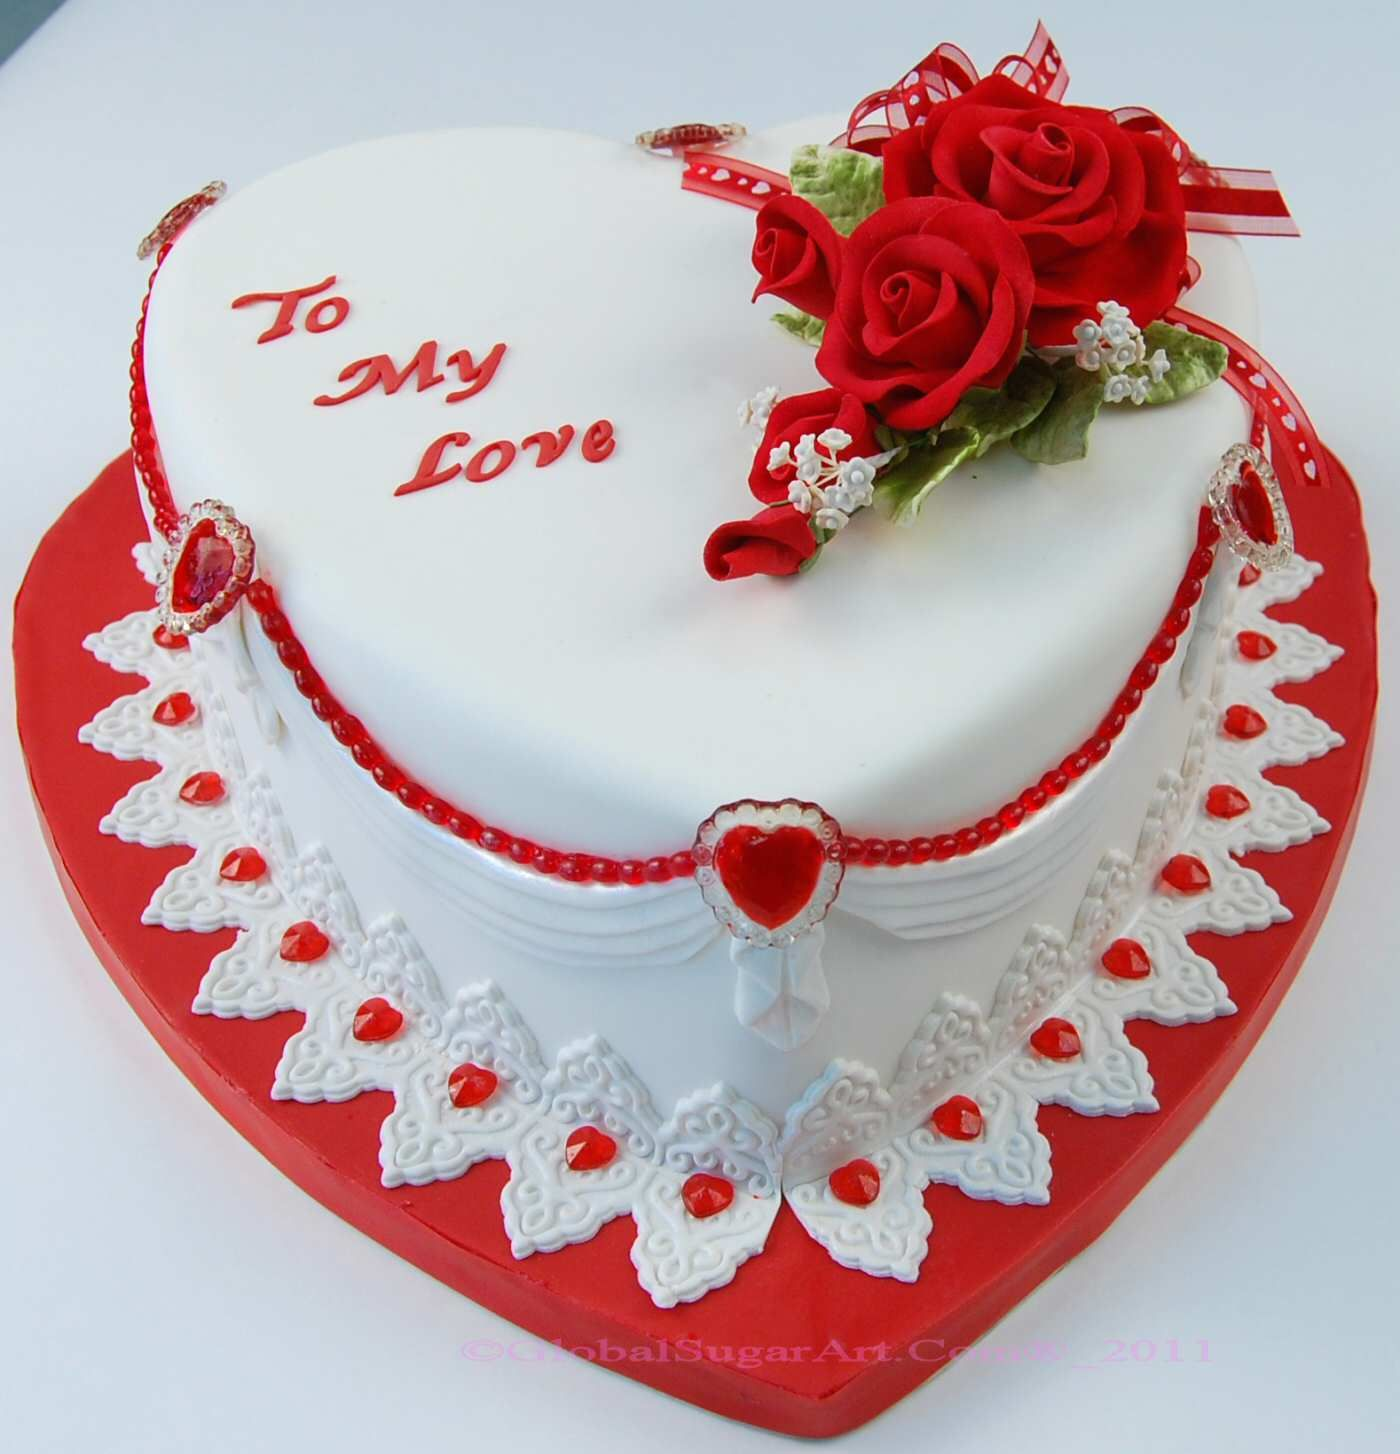 Valentines Cake Decorations Tesco : Decorate a cake like this using marzipan or fondant ...